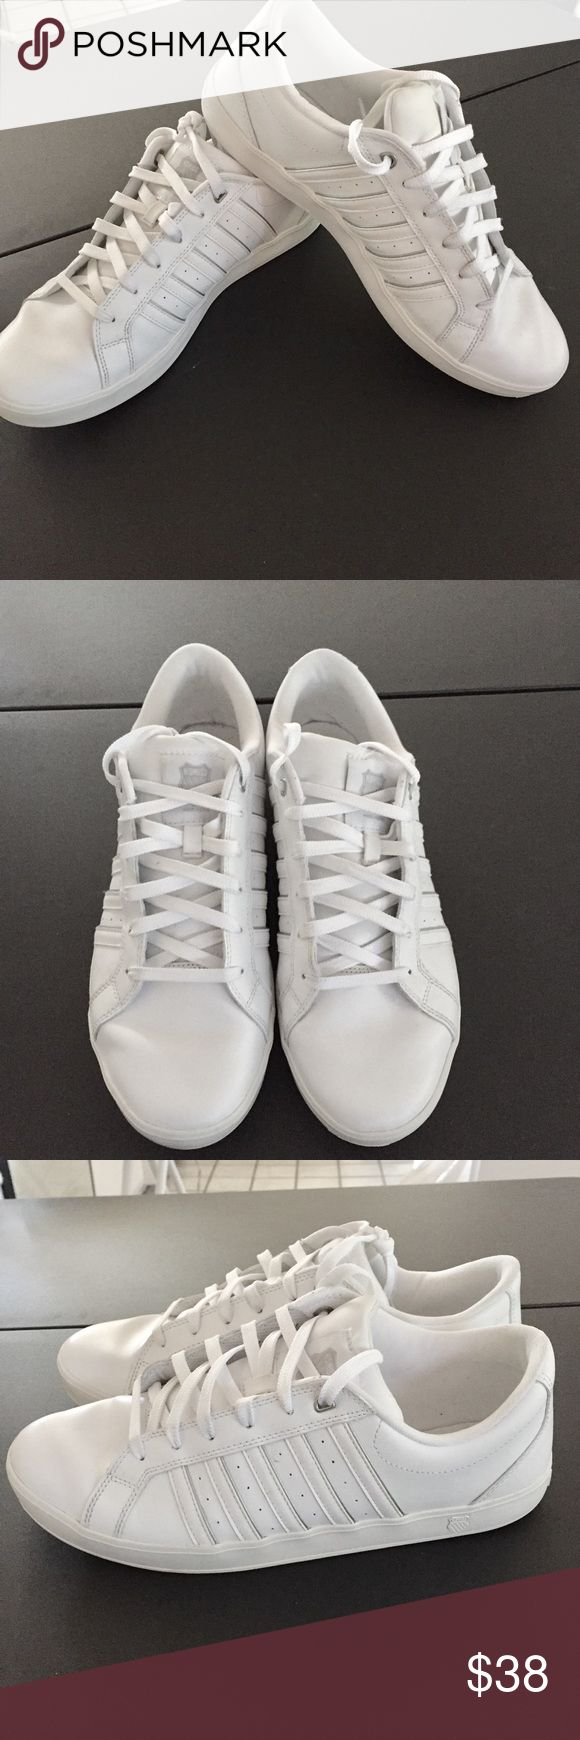 """Men's """"K Swiss"""" white Great pair of men's """"K Swiss"""" low, white sneakers. These shoes are in great shape with very little wear,  minor flaw one label is slightly unraveled see last photo. K-Swiss Shoes Sneakers"""